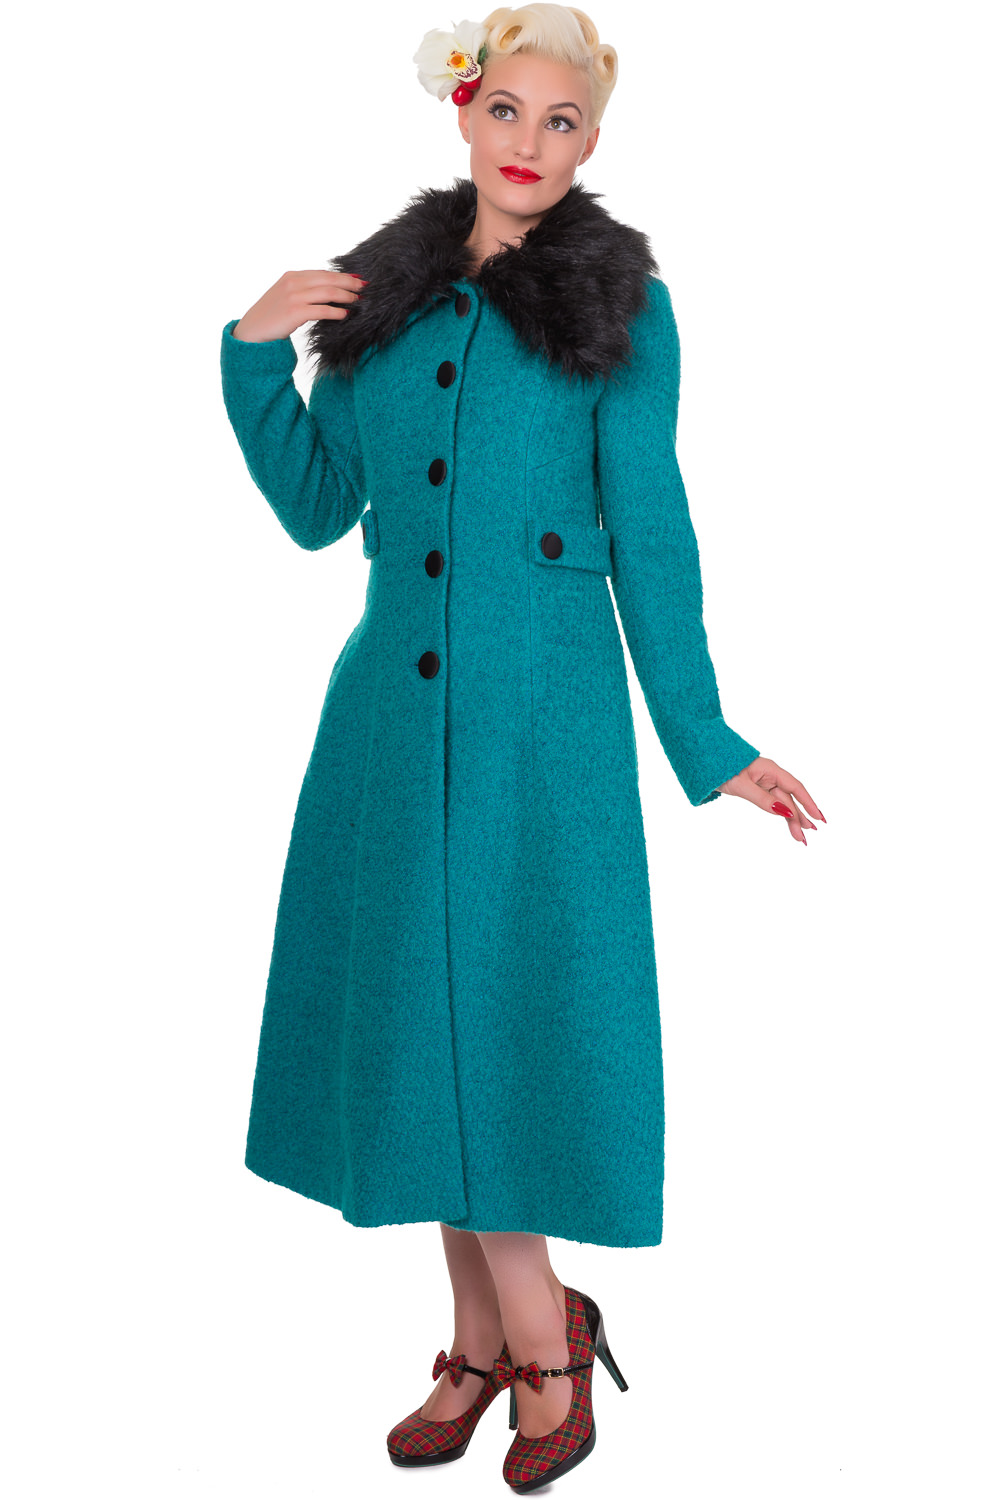 Banned Simple Game 40's 50's Emerald Coat